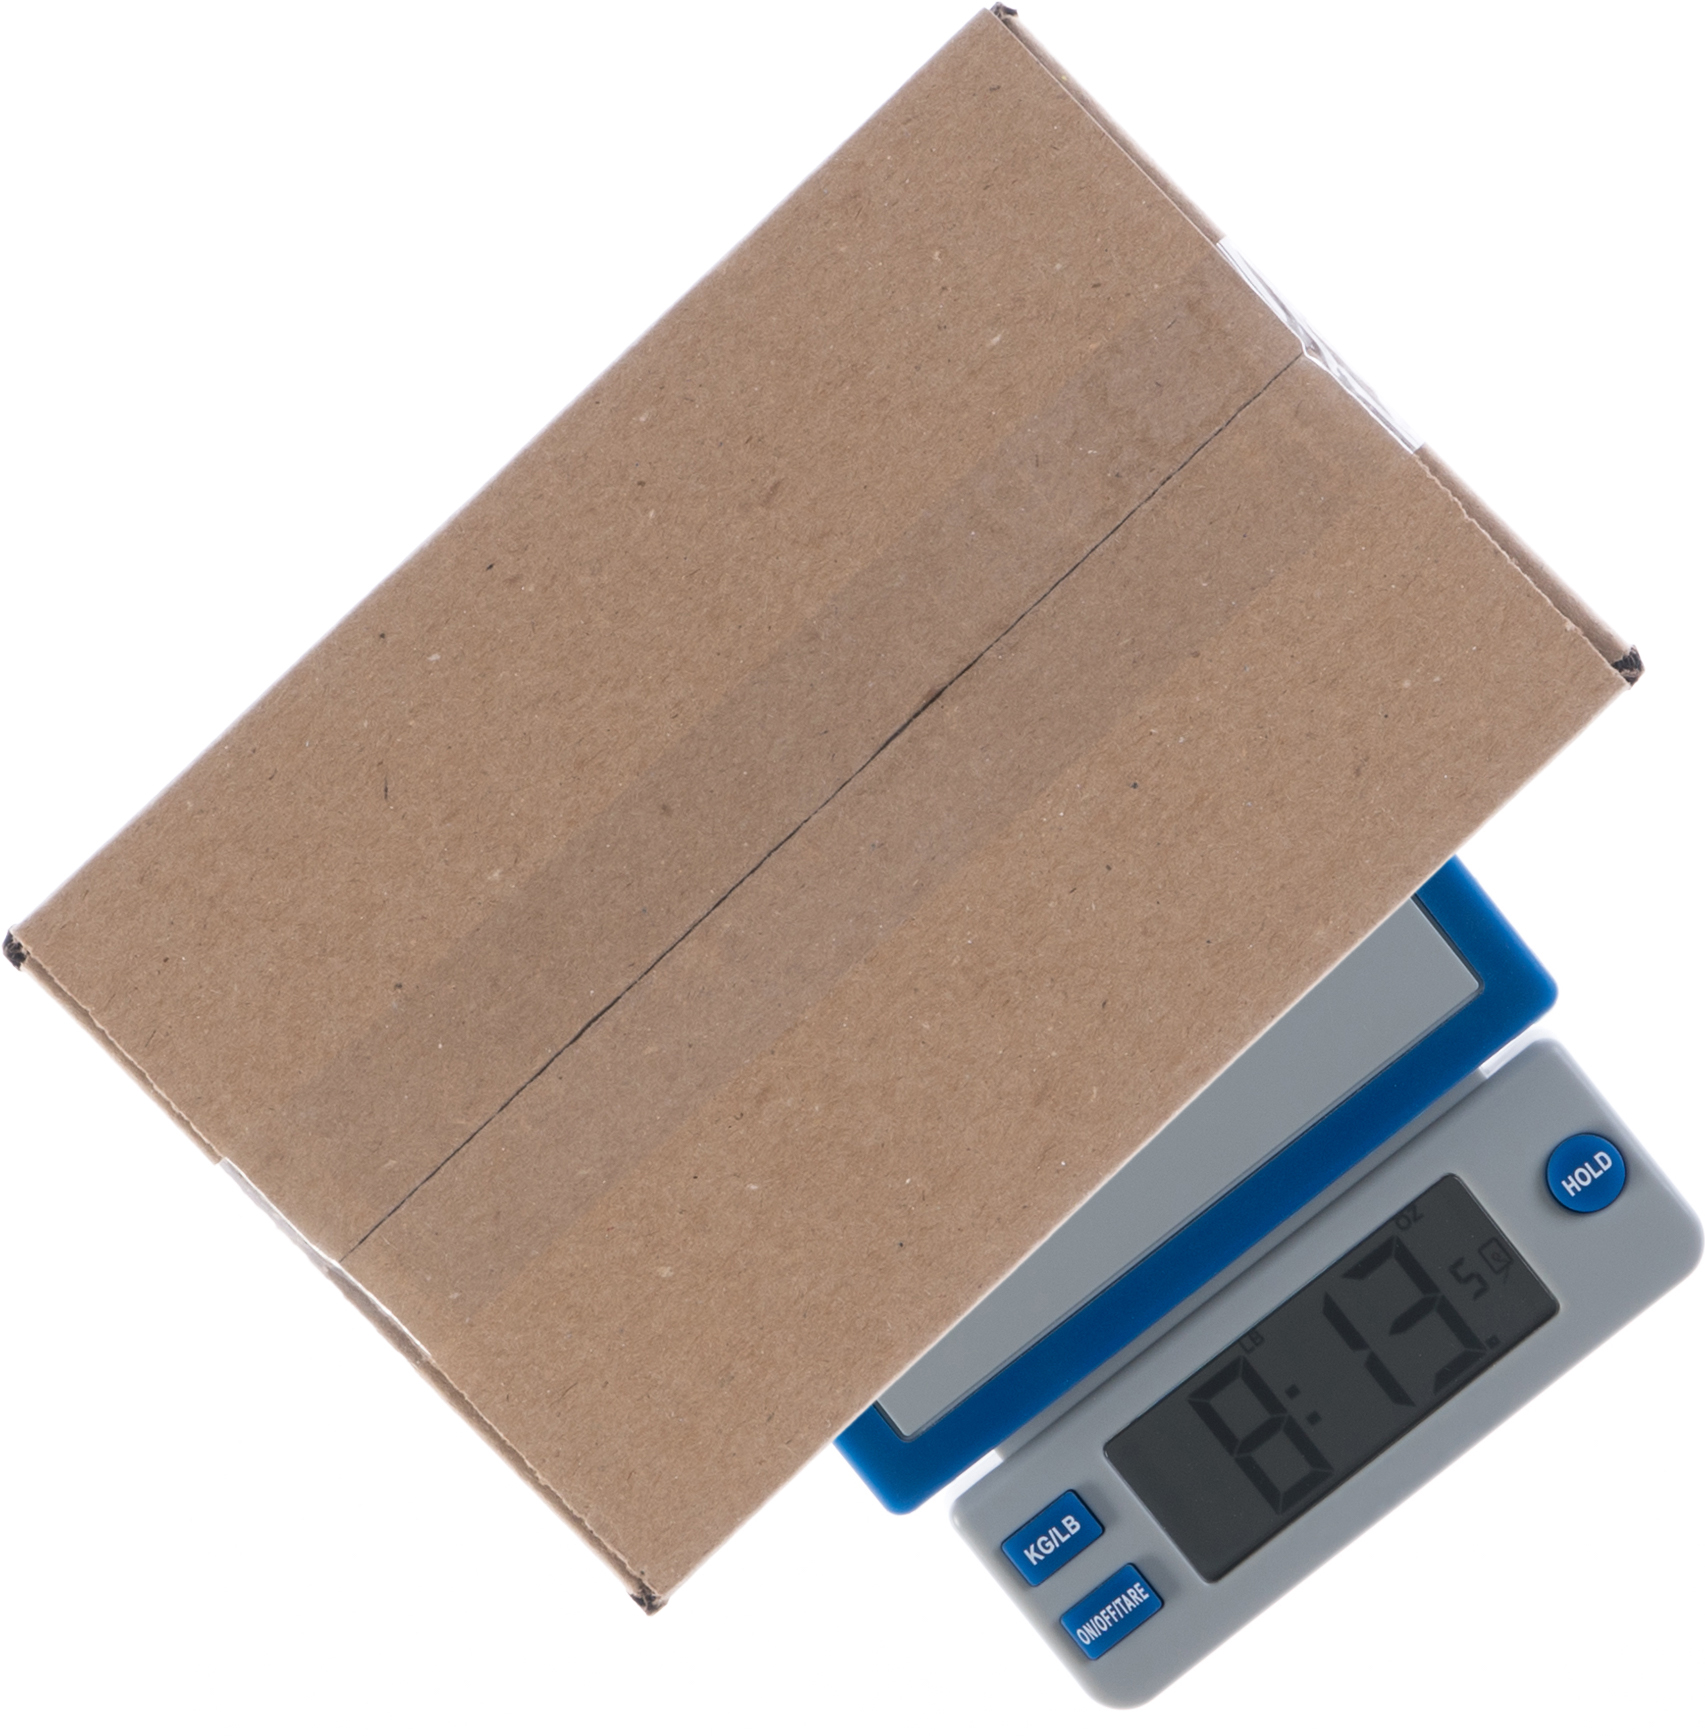 USPS postage scale with a box on it